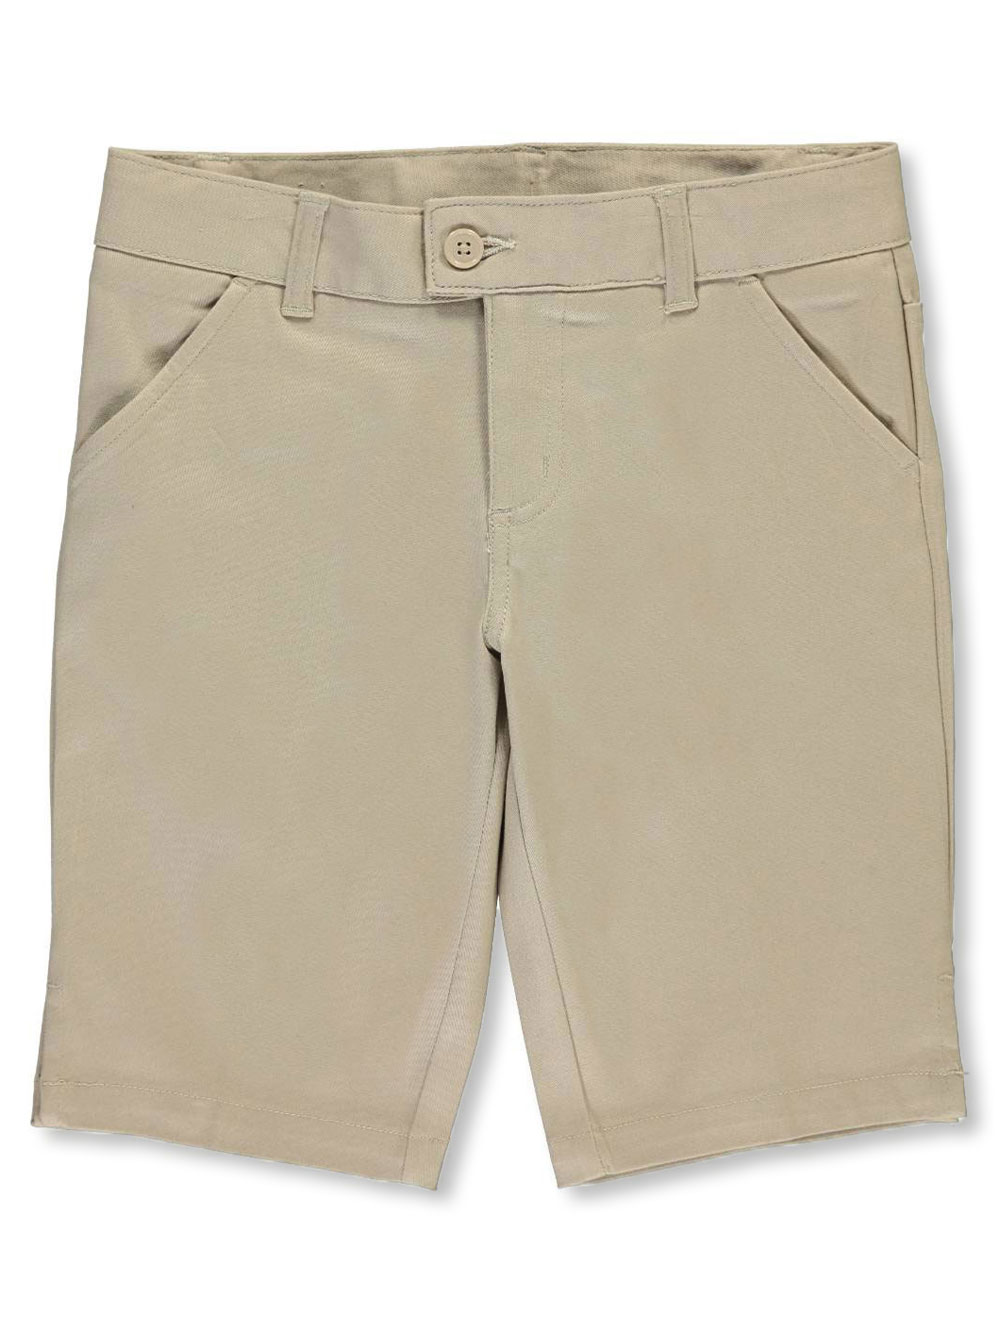 Shorts and Skorts Twill Construction